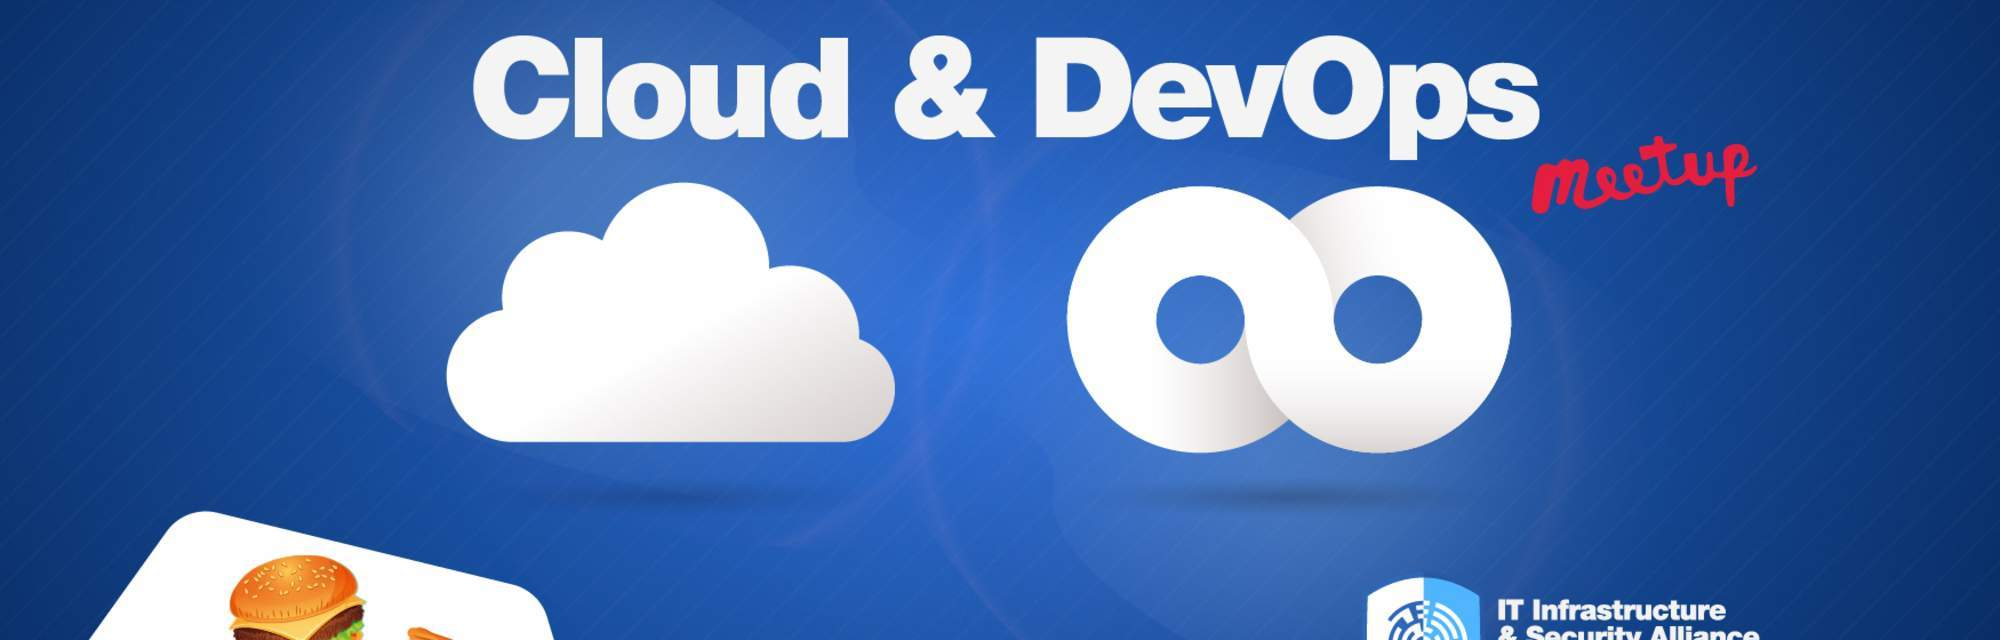 IT Cloud & Devops meetup banner